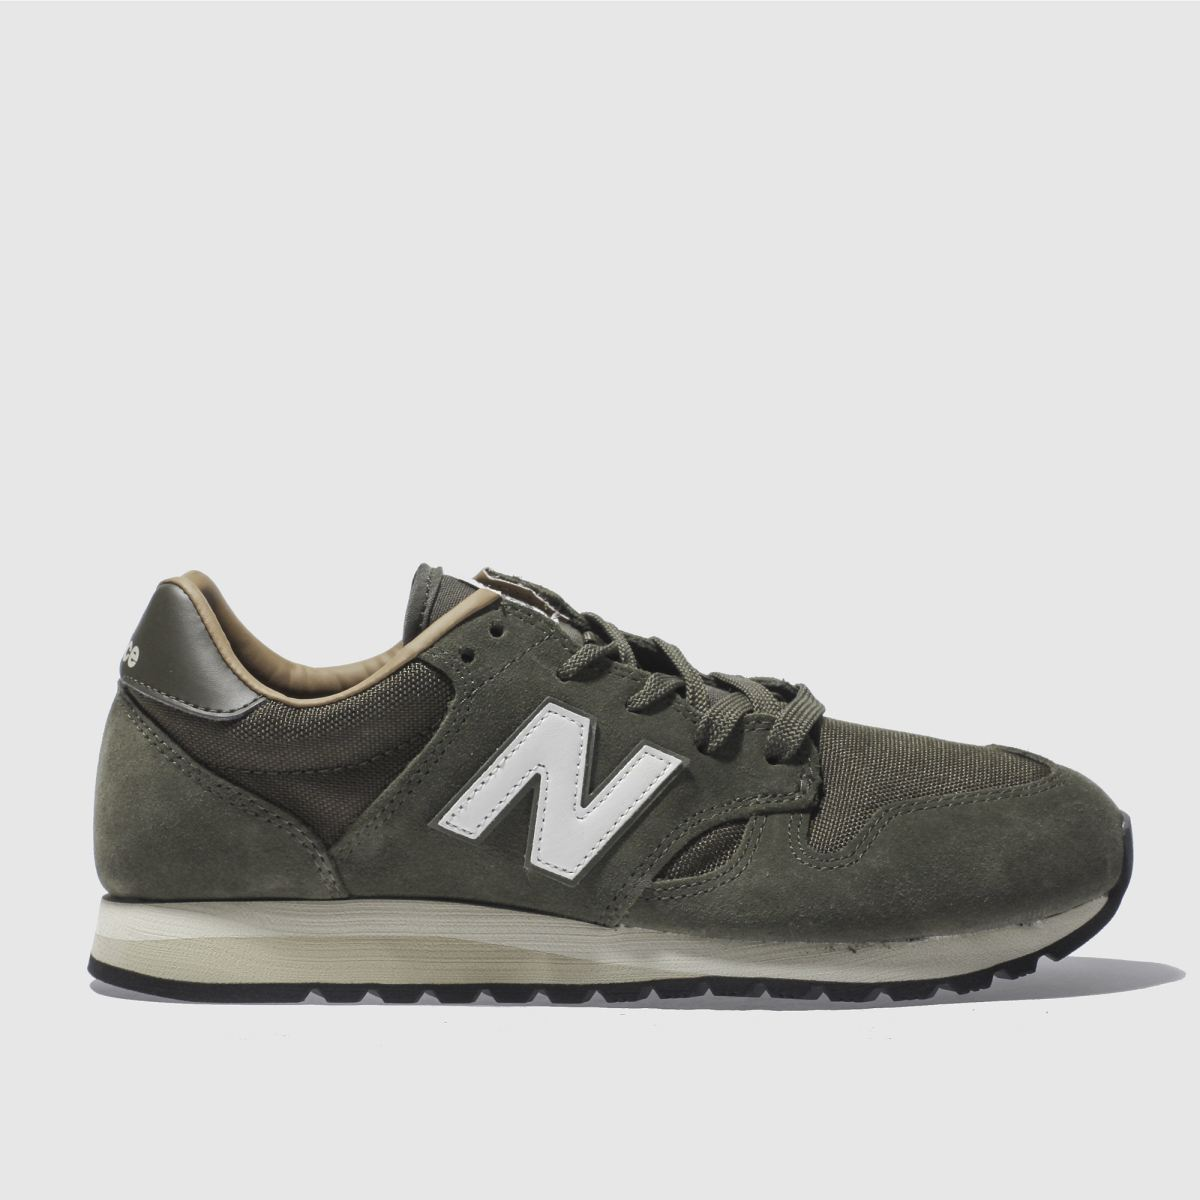 New Balance Khaki 520 Trainers